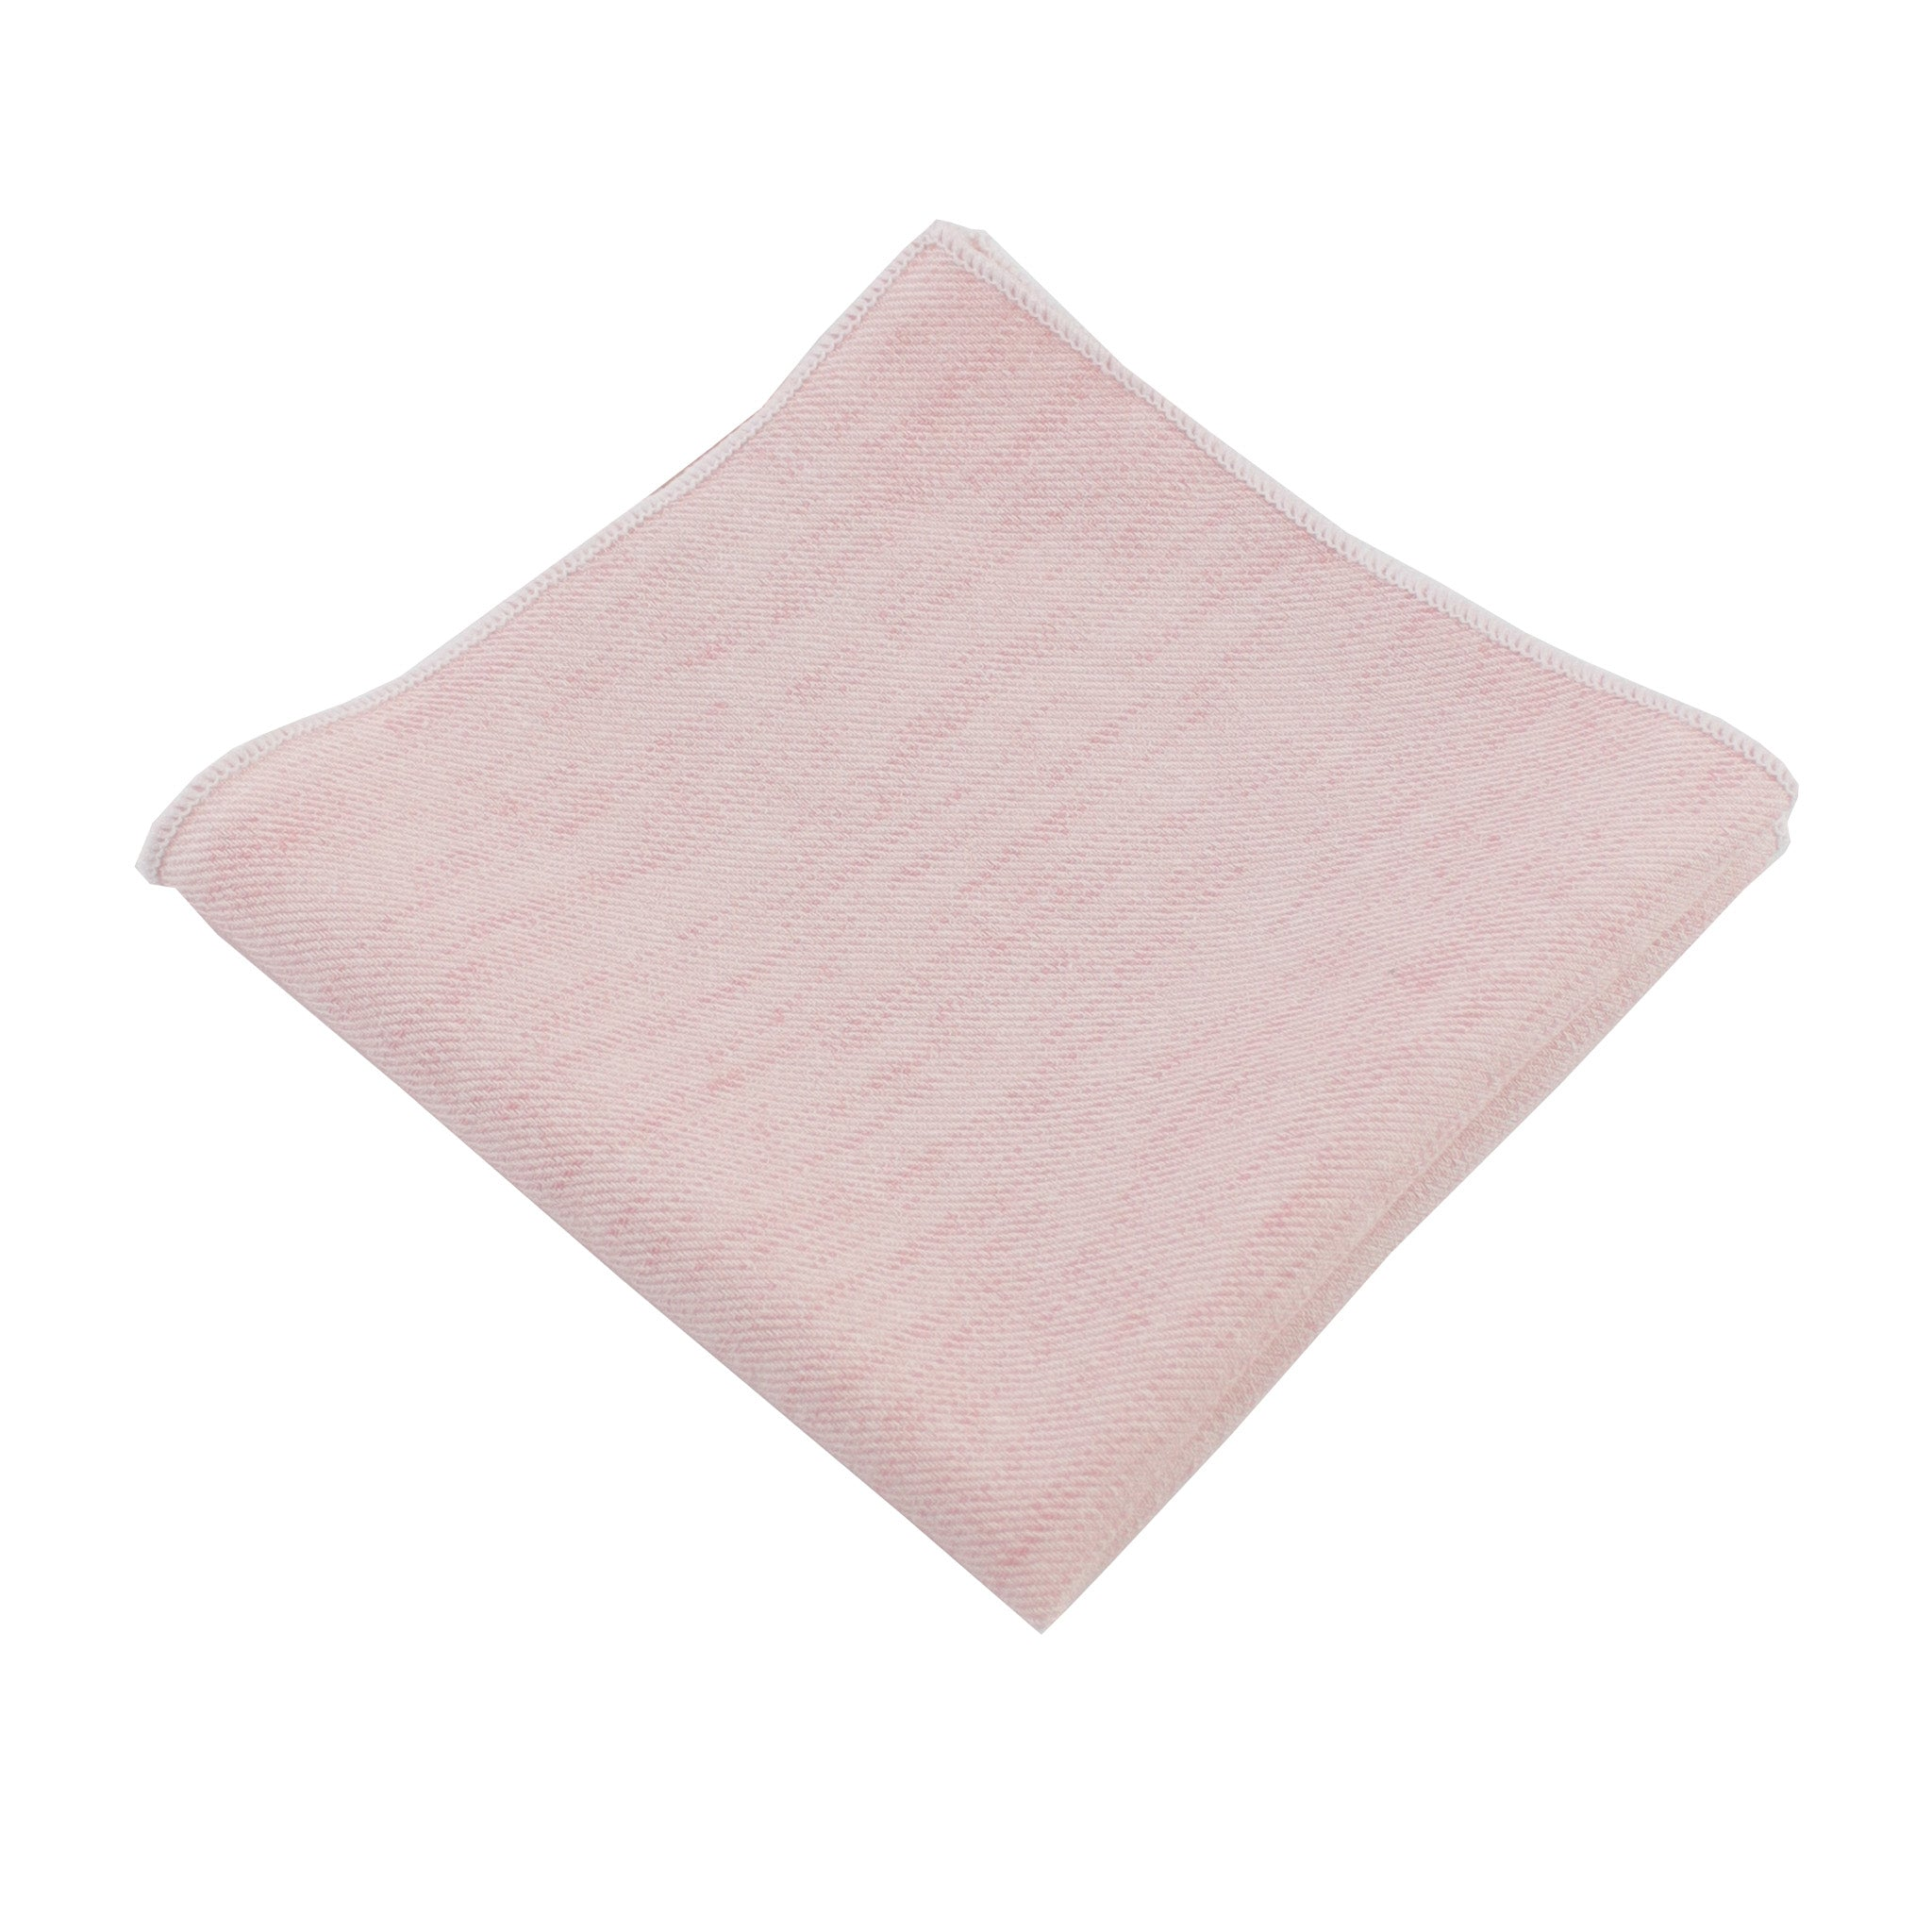 Blush Cloud Pocket Square from DIBI